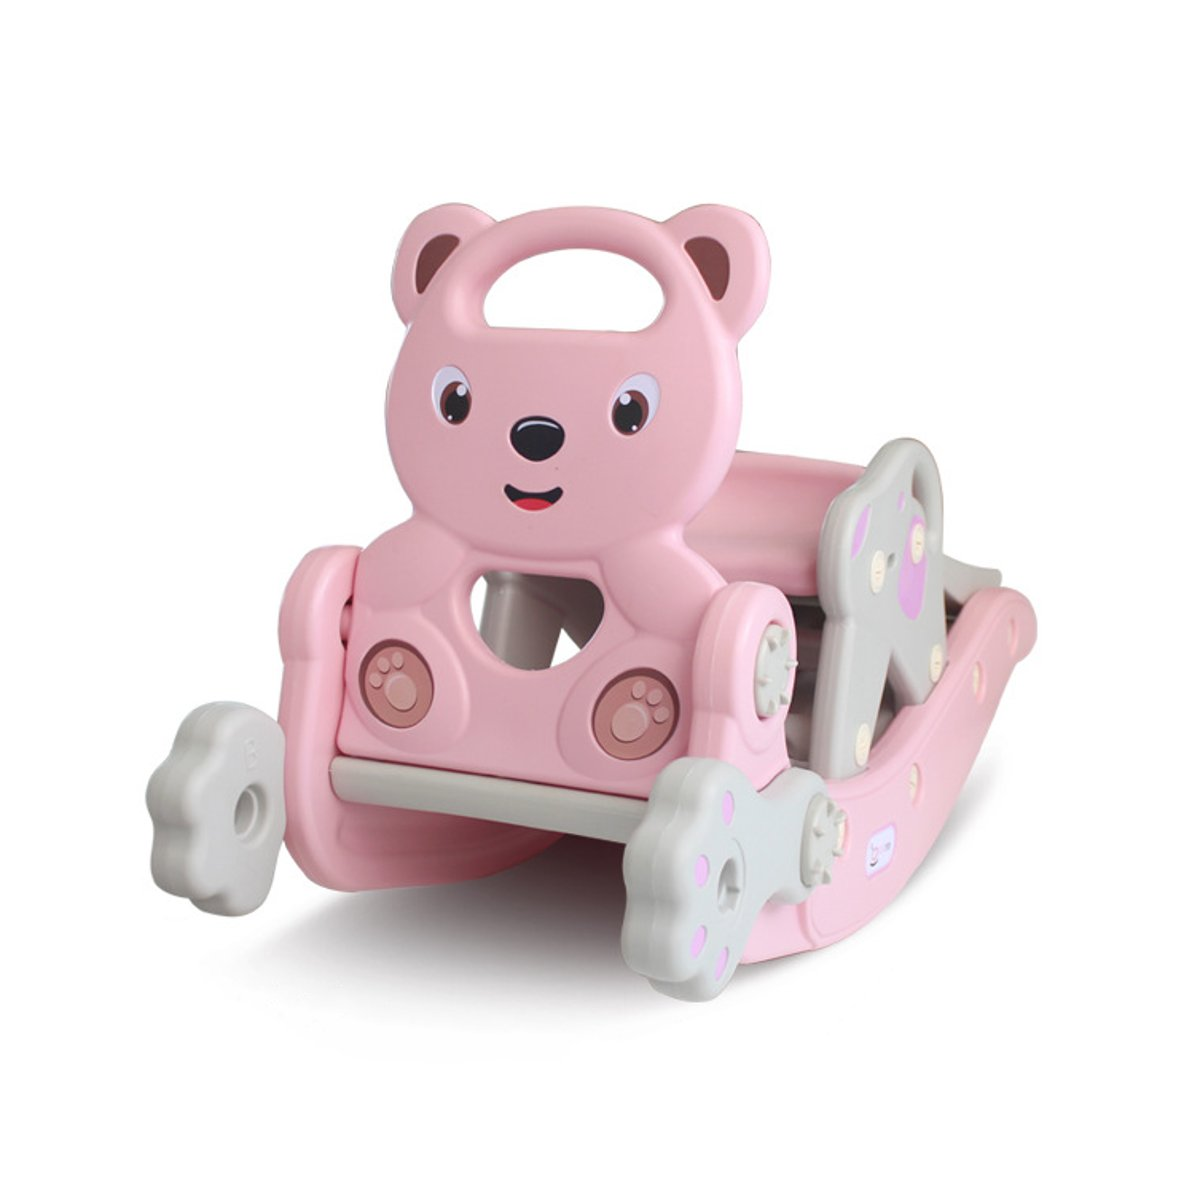 2 in 1 Children Shake Horses PE Rocking Chair Horse 1-6 Years Old Baby Child Birthday Creative Gifts Supplies